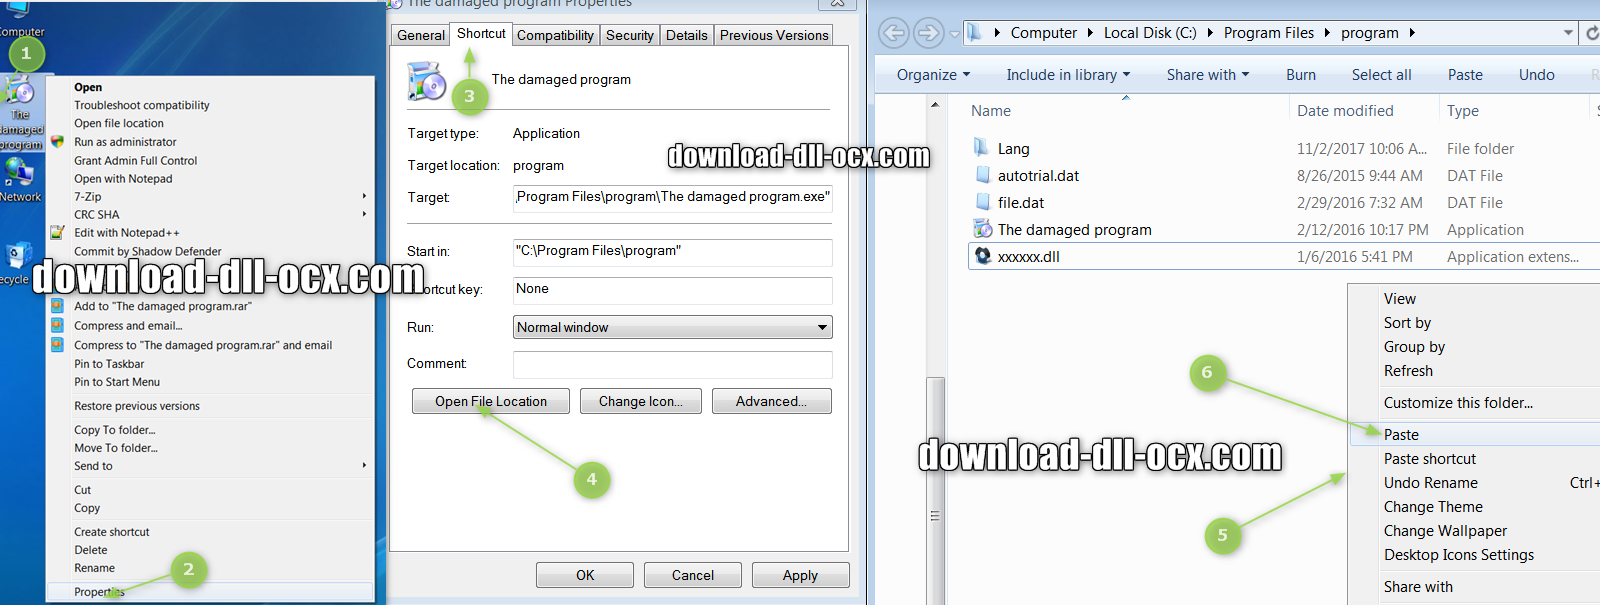 how to install Qad2wpg.dll file? for fix missing